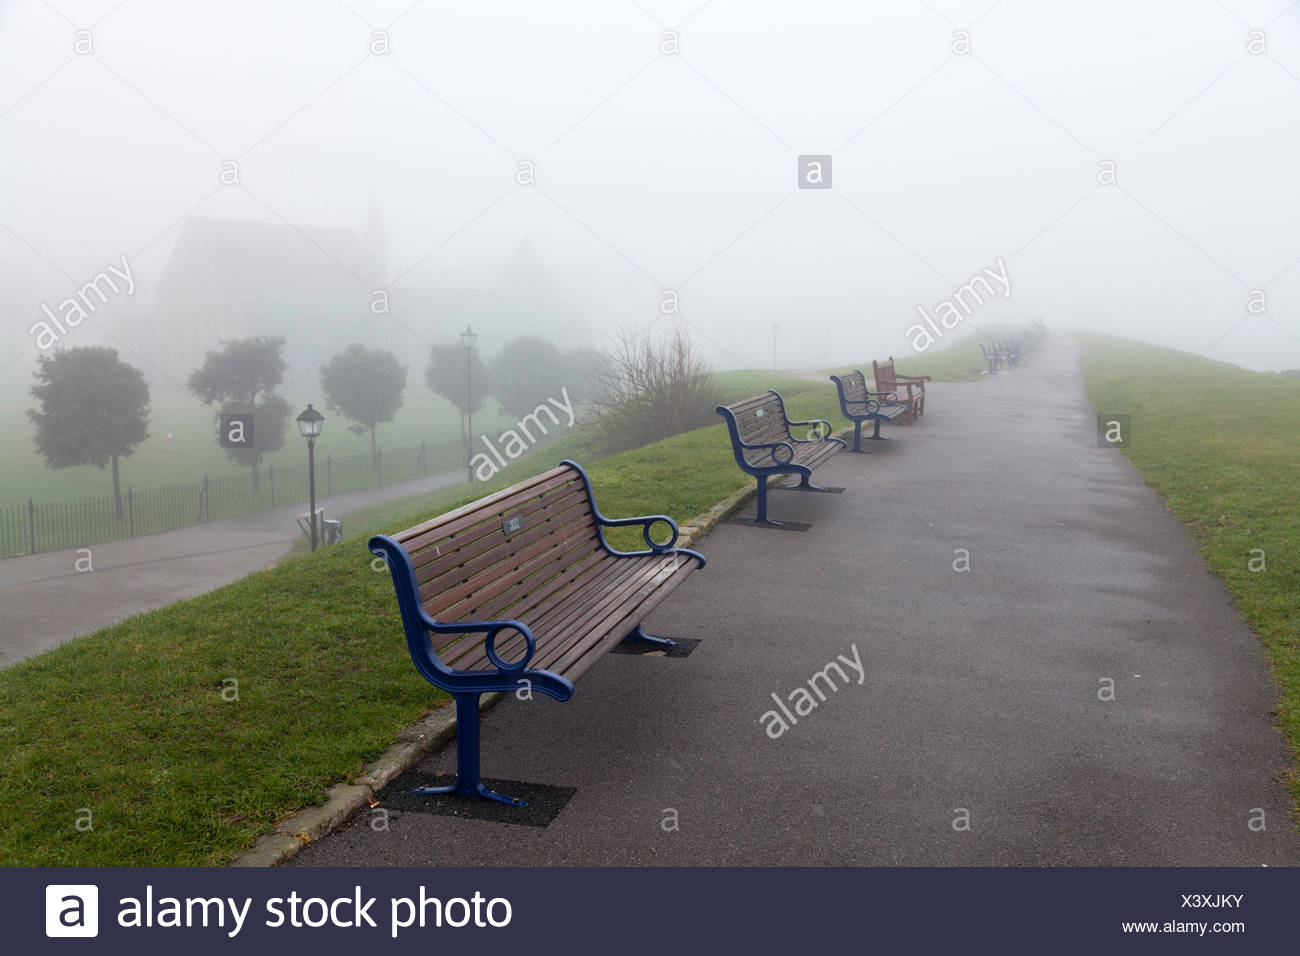 Empty unoccupied benches in fog in a line - Stock Image